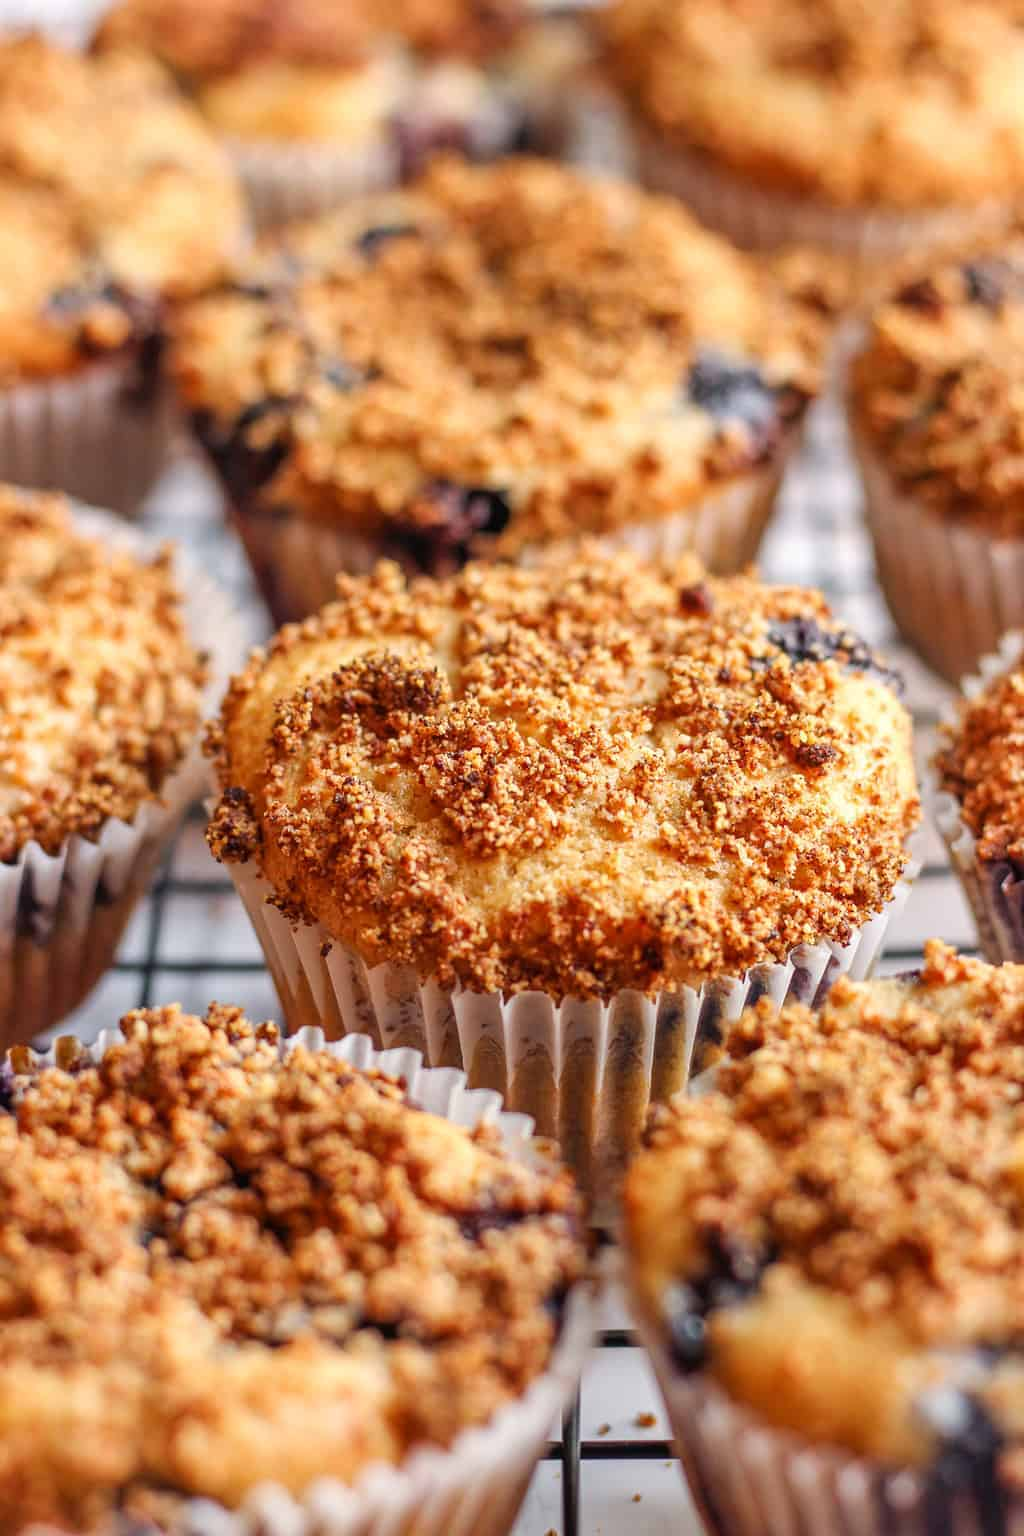 Vegan Blueberry Muffins with streusel topping